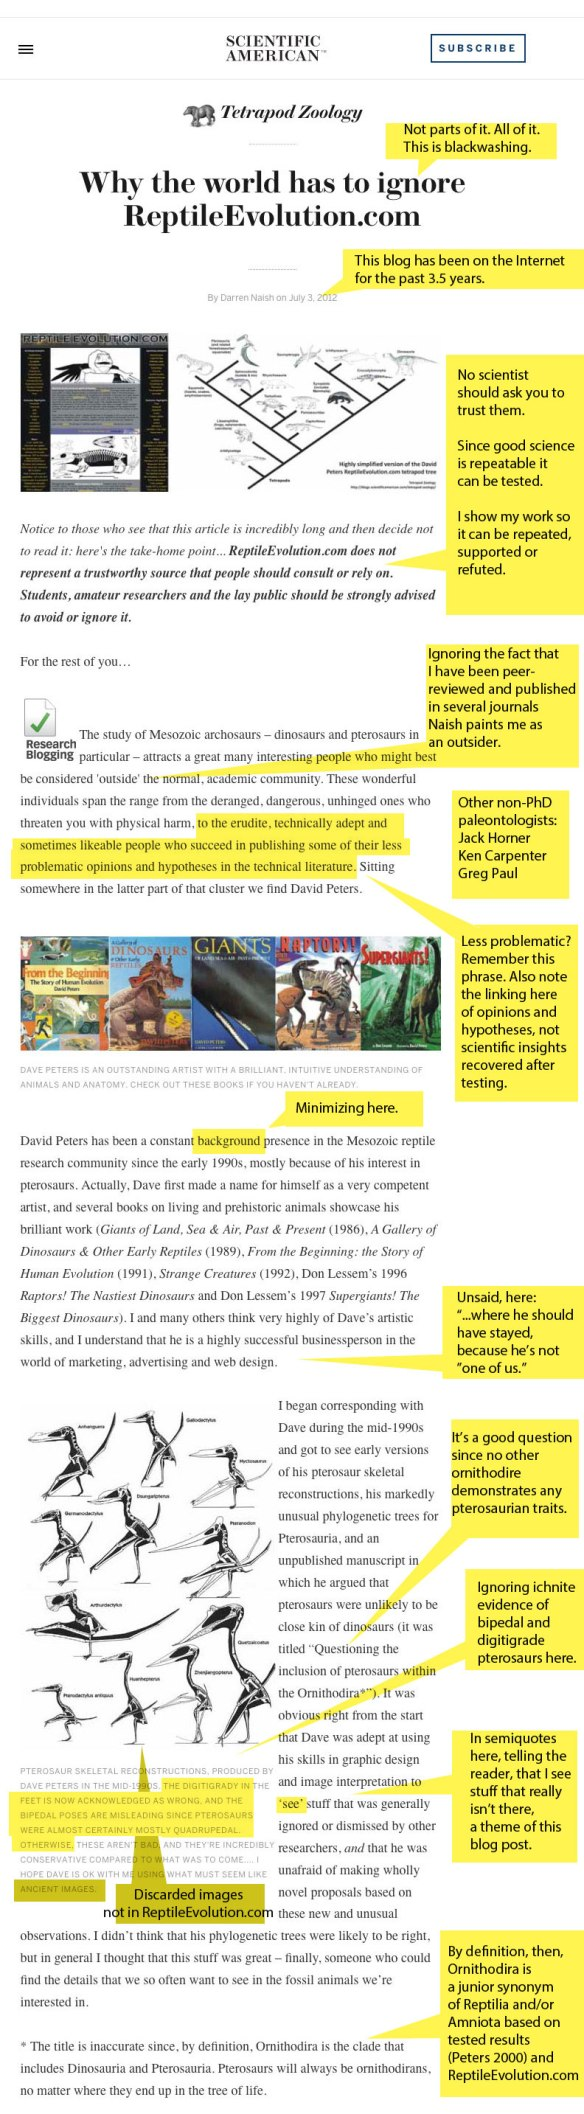 Figure 1 of 10. Click to enlarge. Monitor shot of Tet Zoo blog with annotations in yellow.